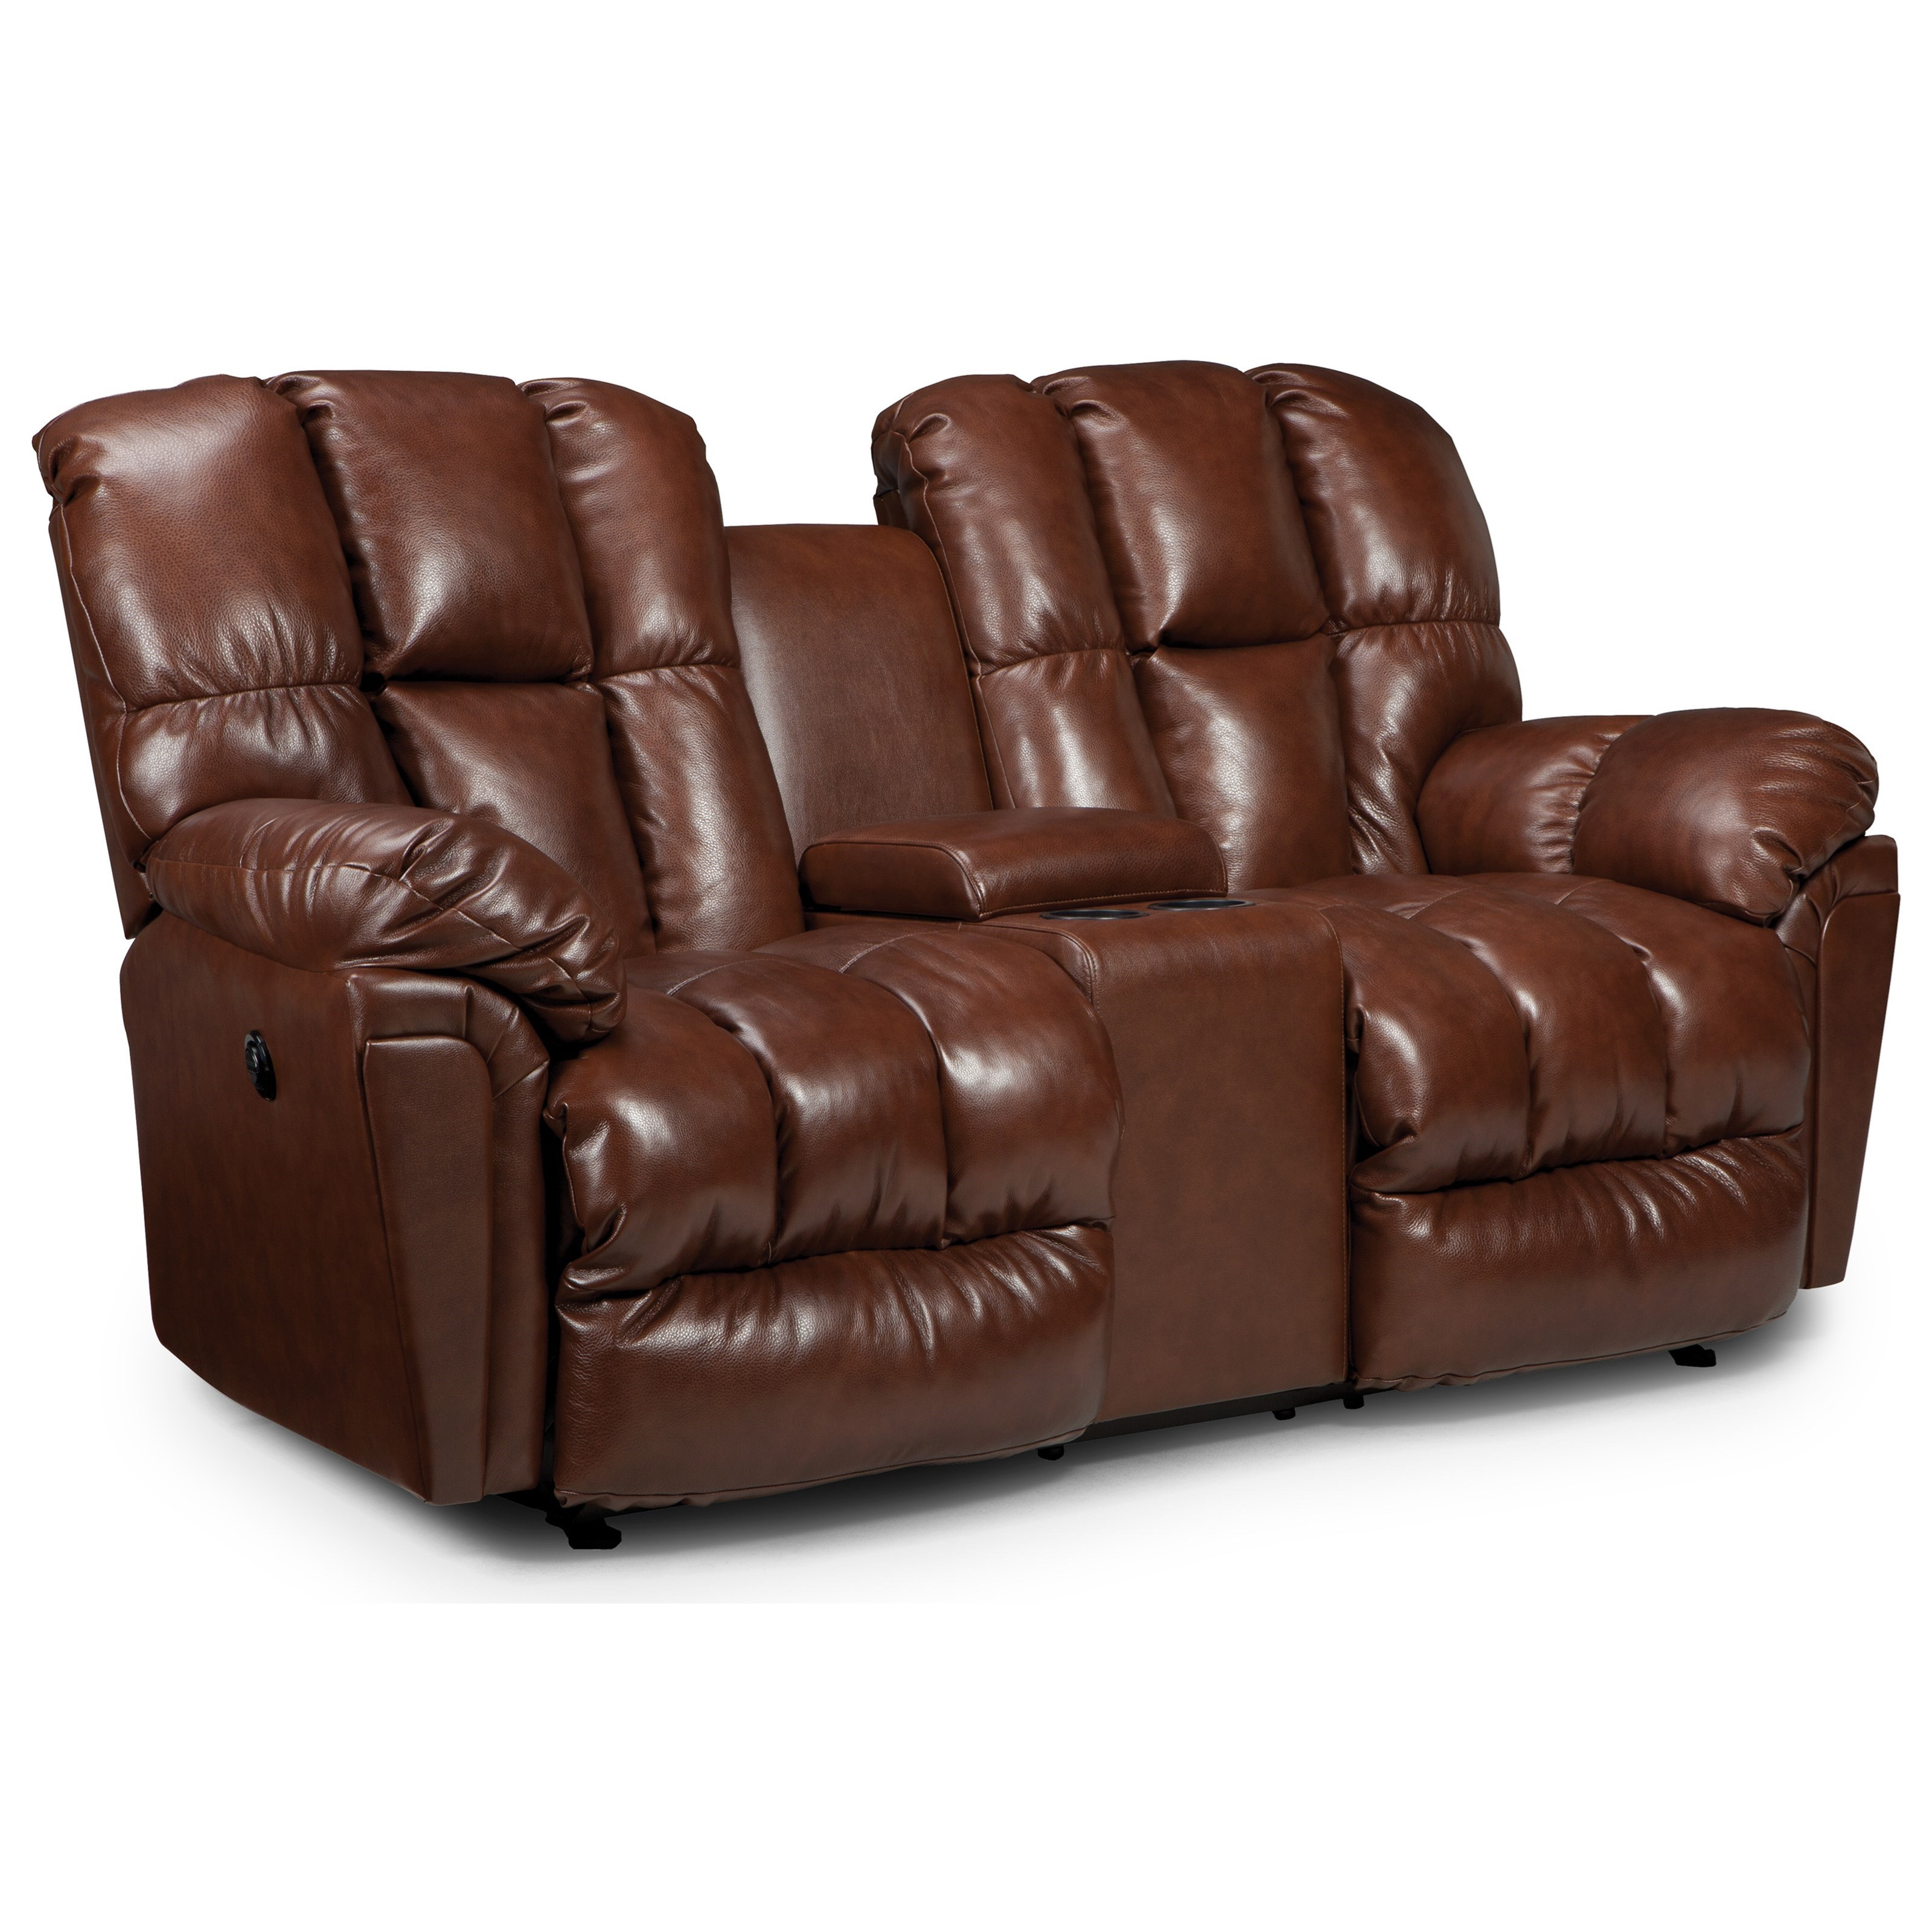 Best Home Furnishings Lucas Power Rocking Reclining Loveseat w/ Console - Item Number: L856CQ7 01